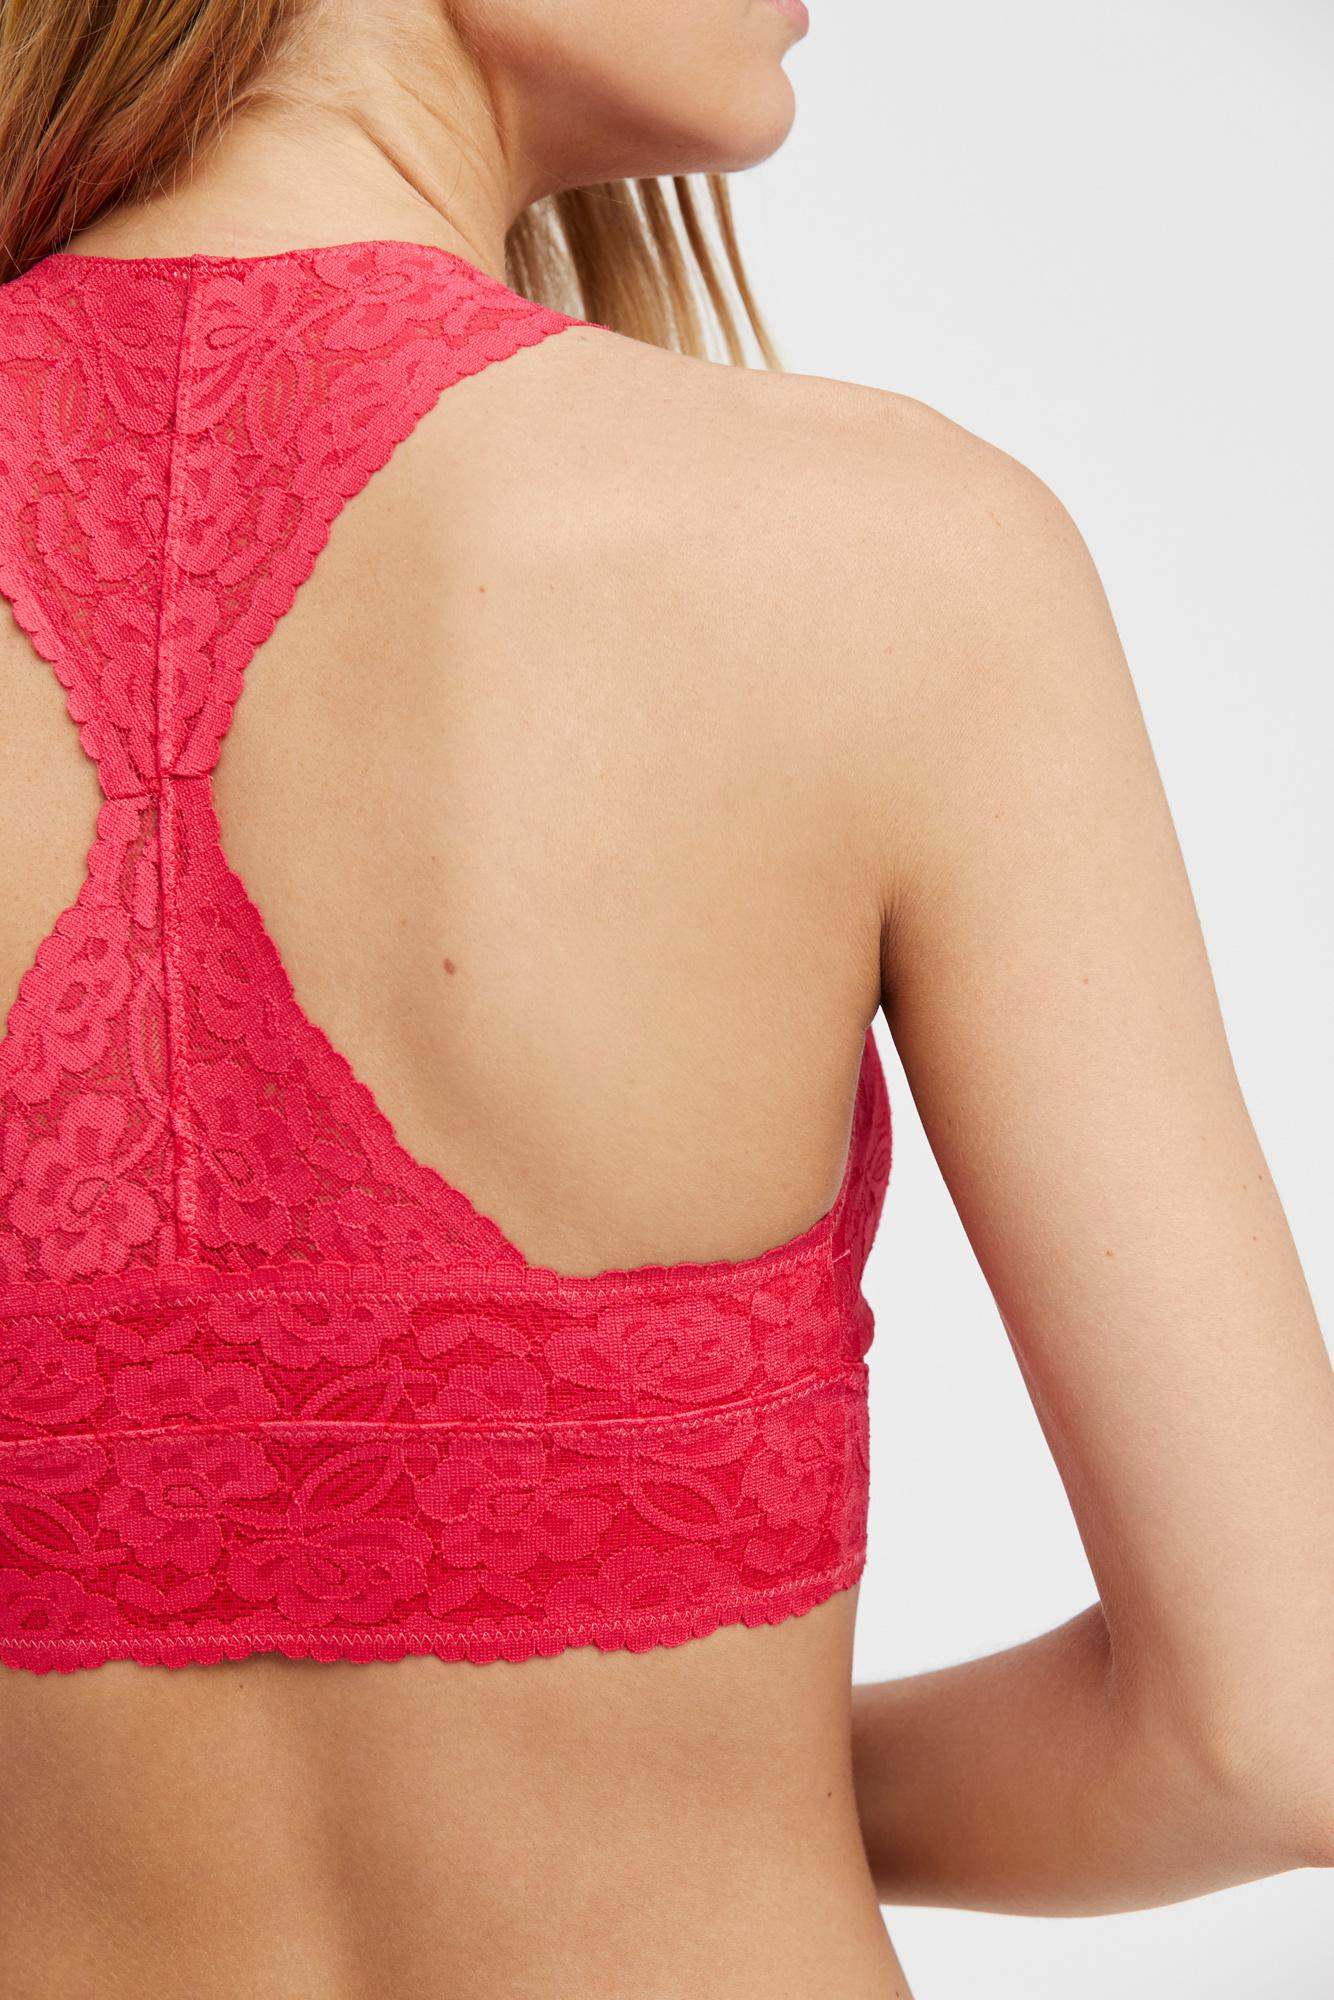 a26f9aae642e7 Free People - Pink Galloon Lace Racerback By Intimately - Lyst. View  fullscreen